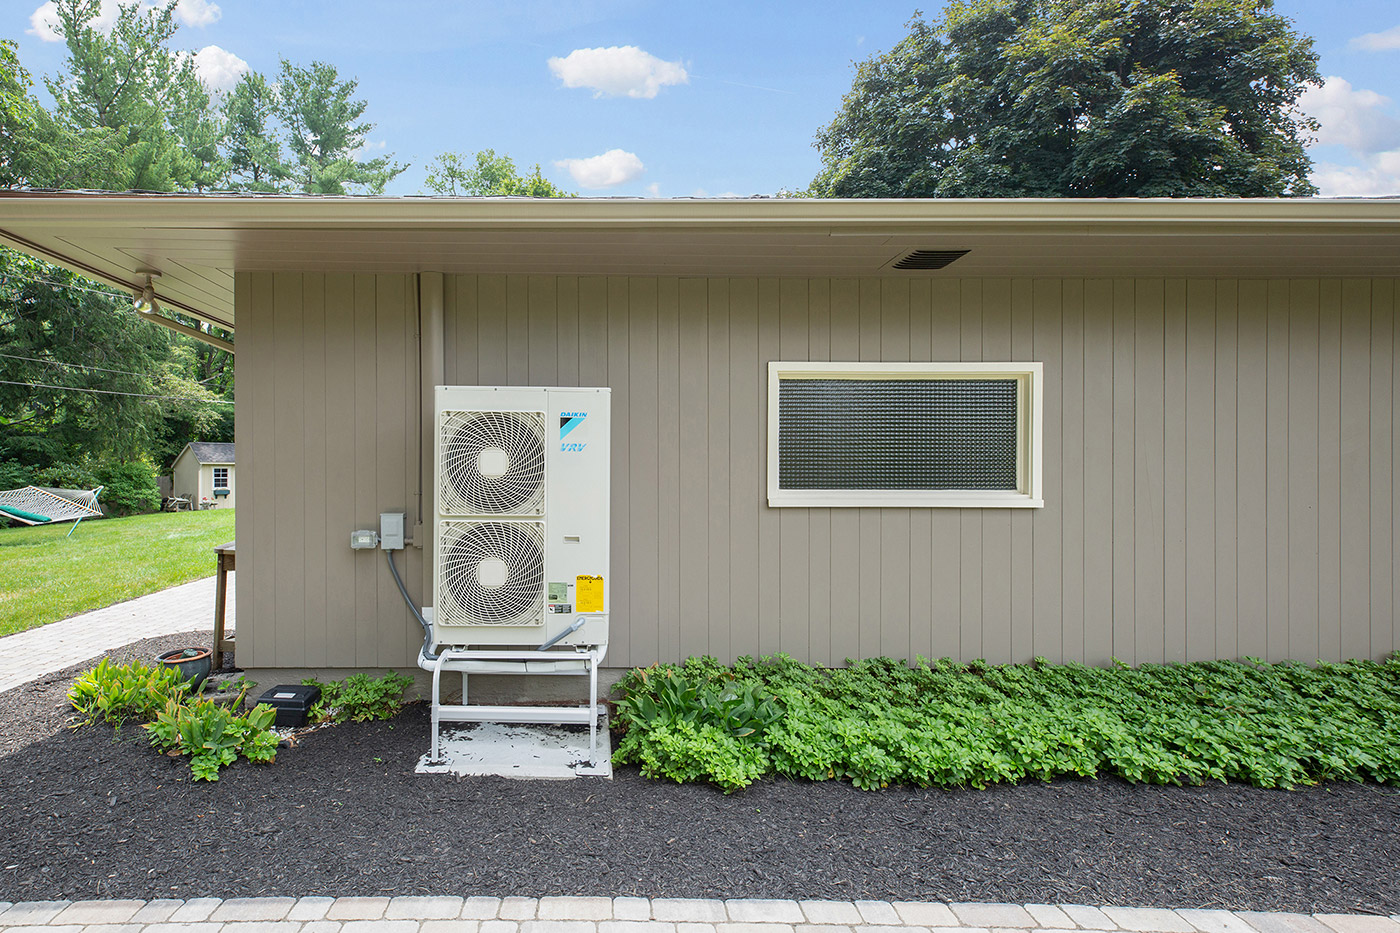 Imaage of heat pump outside of a house